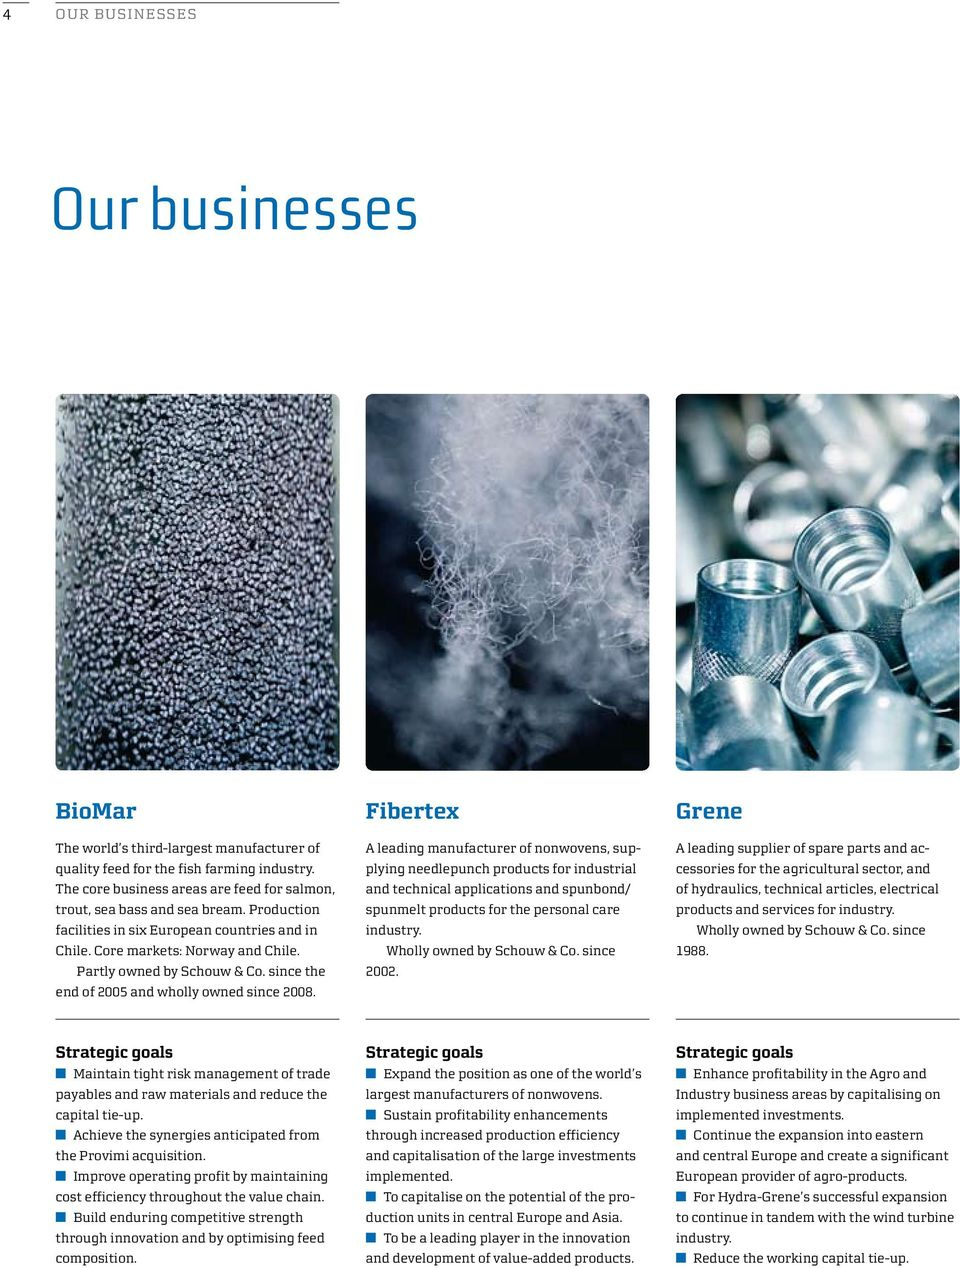 Fibertex A leading manufacturer of nonwovens, supplying needlepunch products for industrial and technical applications and spunbond/ spunmelt products for the personal care industry.